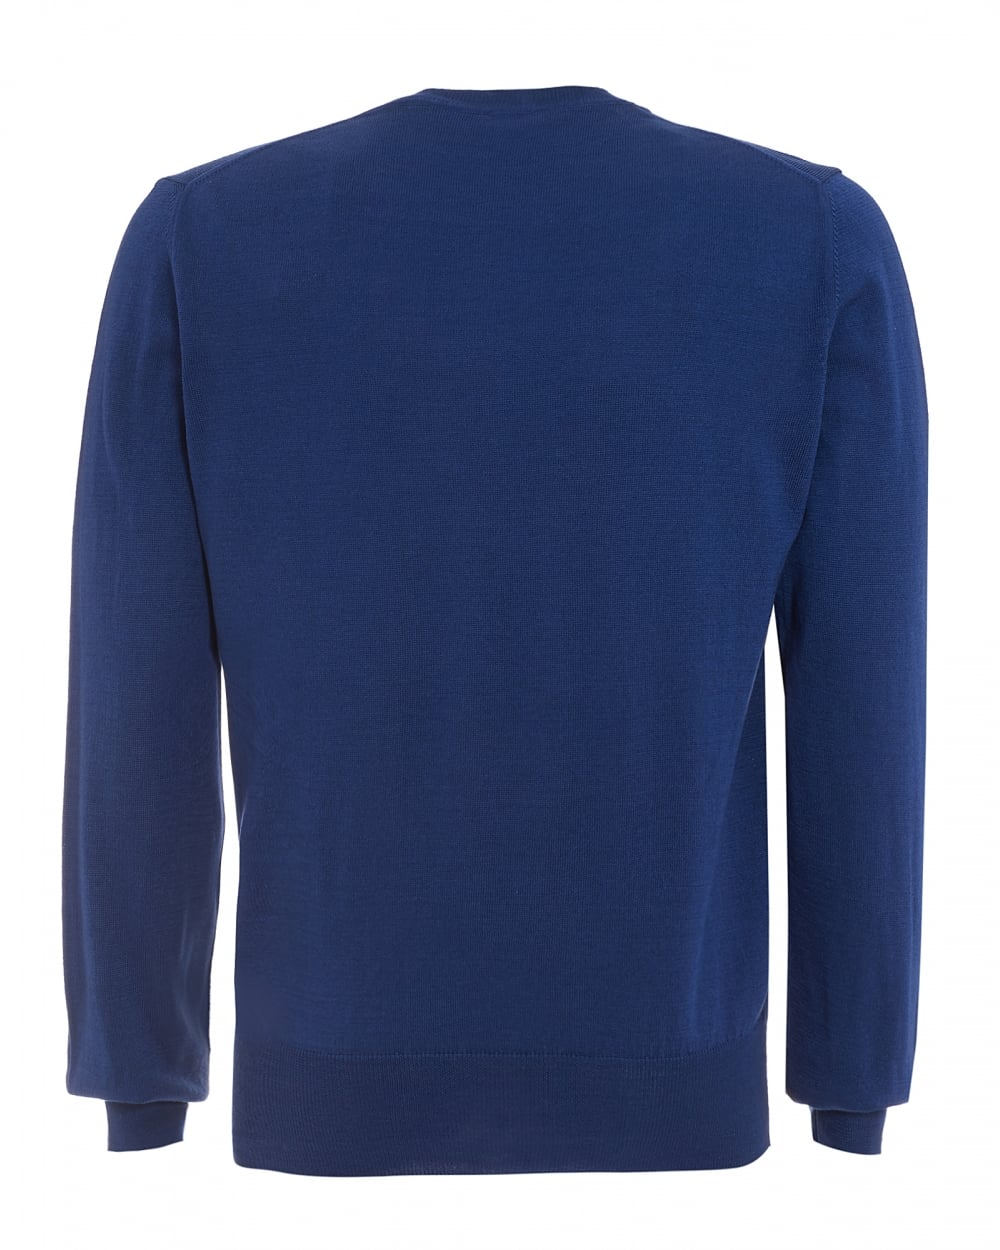 Vivienne Westwood Man Mens Jumper, Orb Logo Plain Blue Sweater